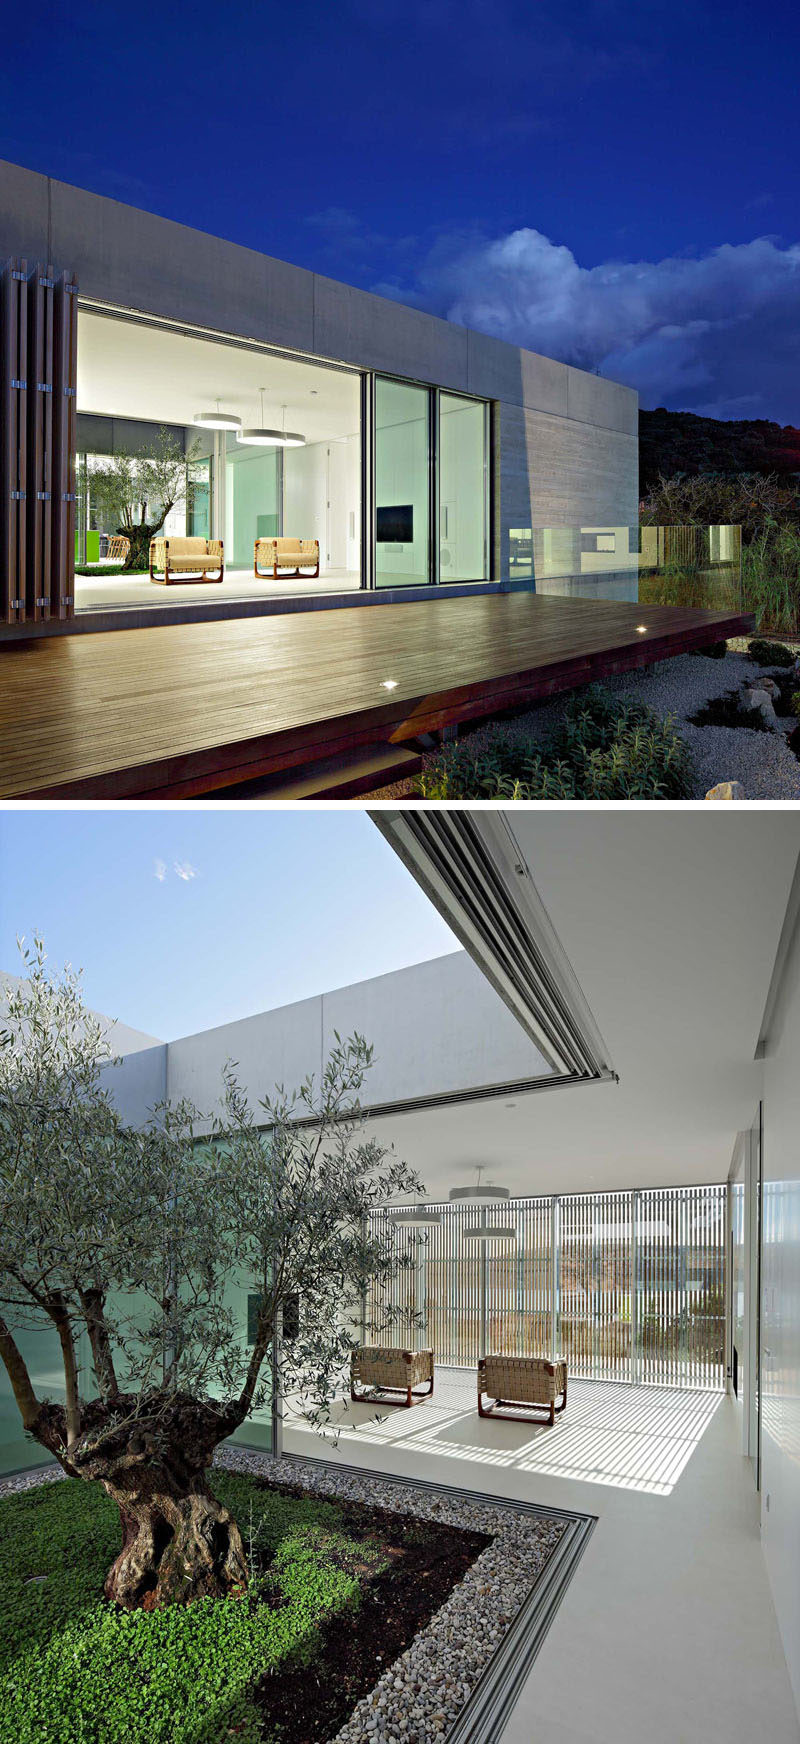 This minimalist living room opens to a deck that overlooks the garden, while behind it is an atrium with a single olive tree. #Atrium #Architecture #LivingRoom #ModernHouse